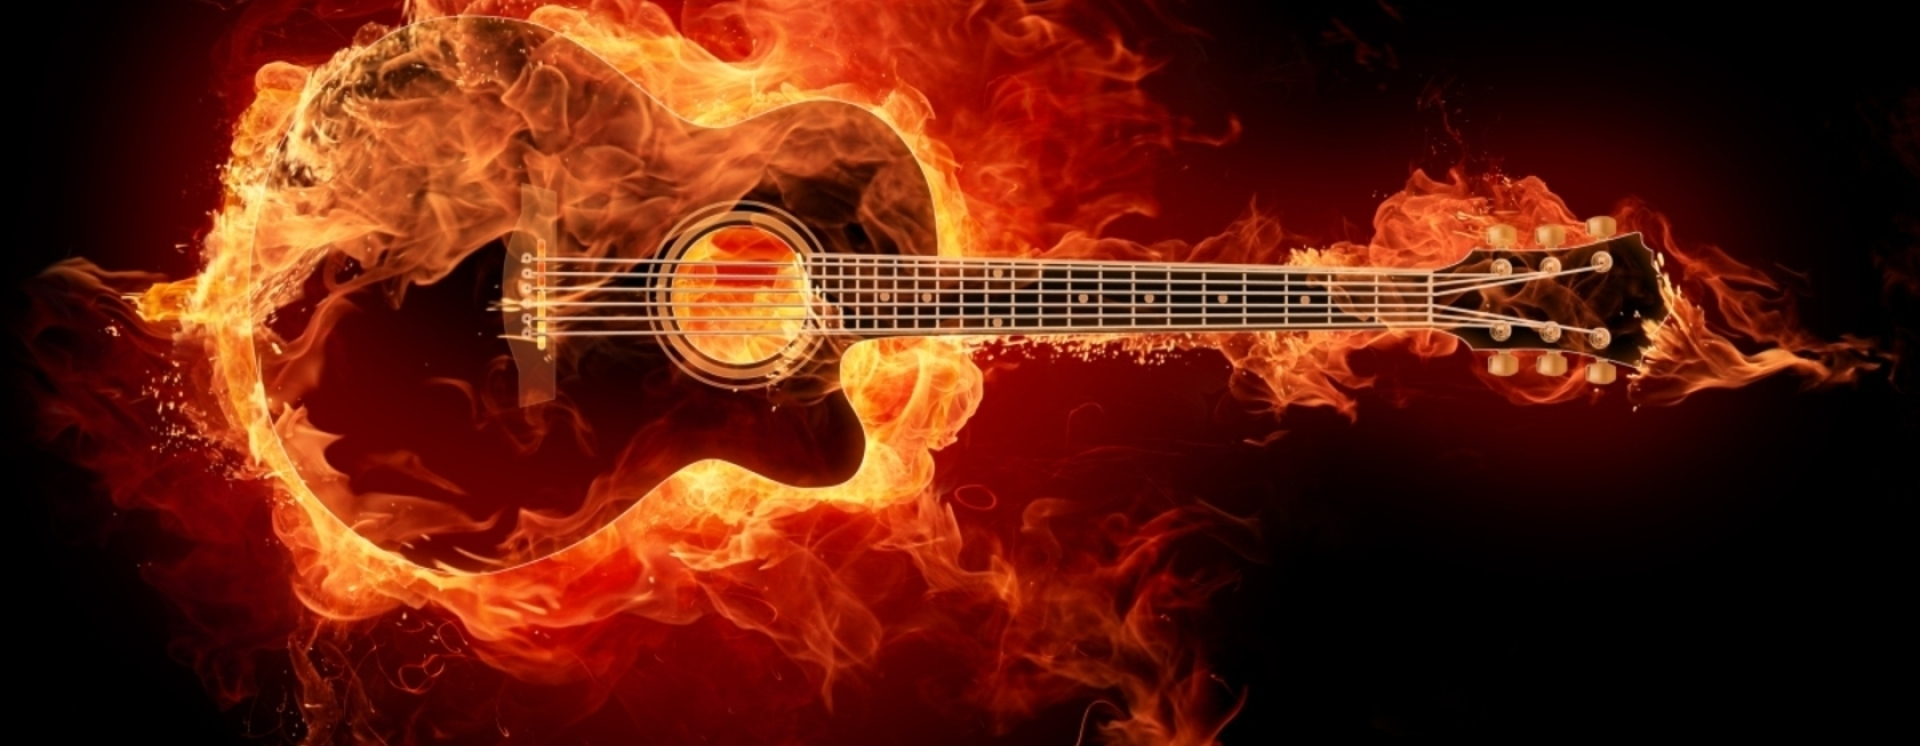 guitar acoustic fire flame - photo #8